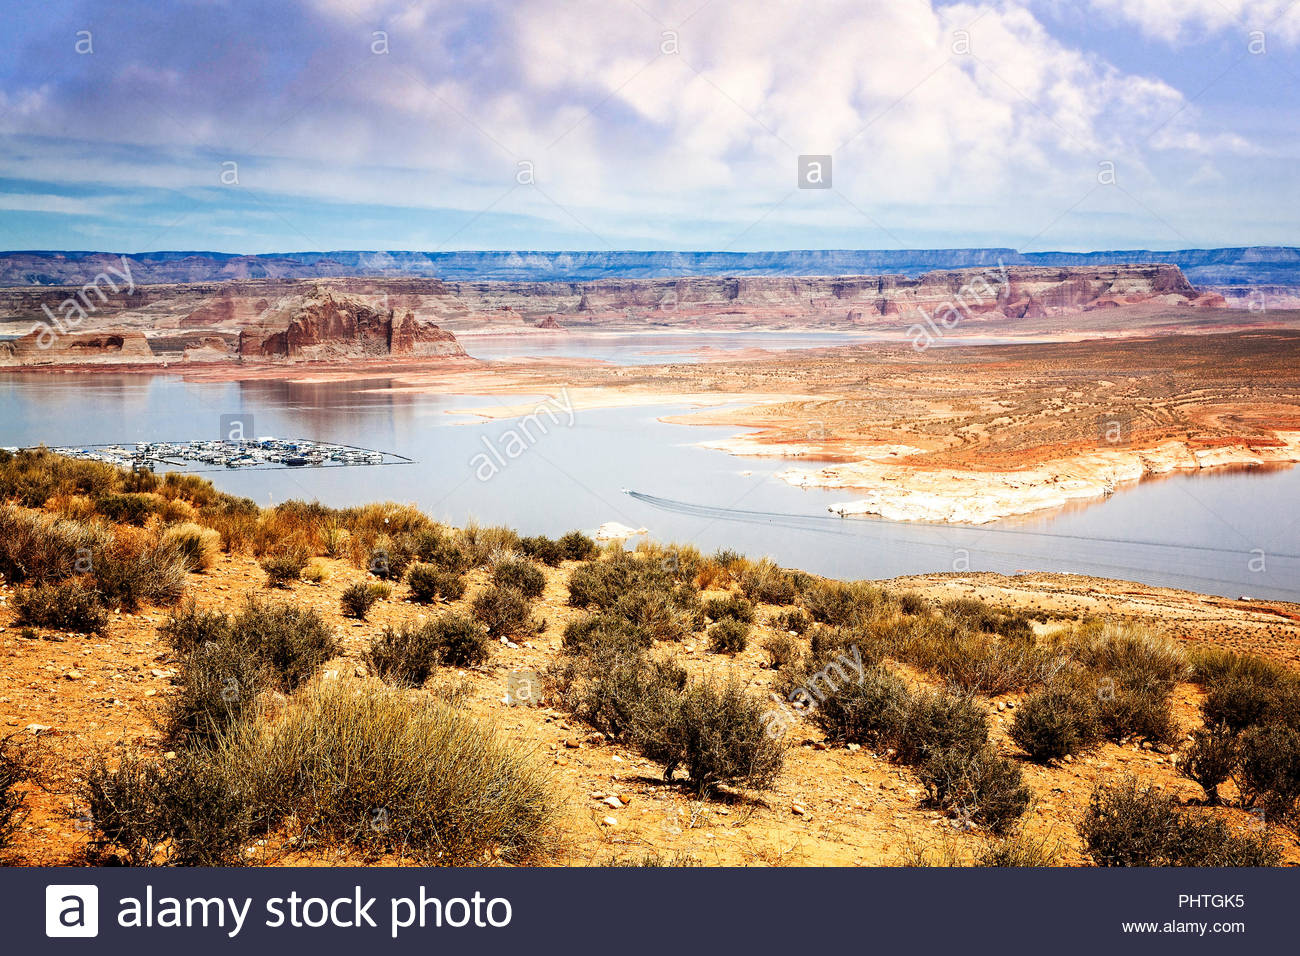 The Lake Powell National Recreational area near Page, Arizona. - Stock Image